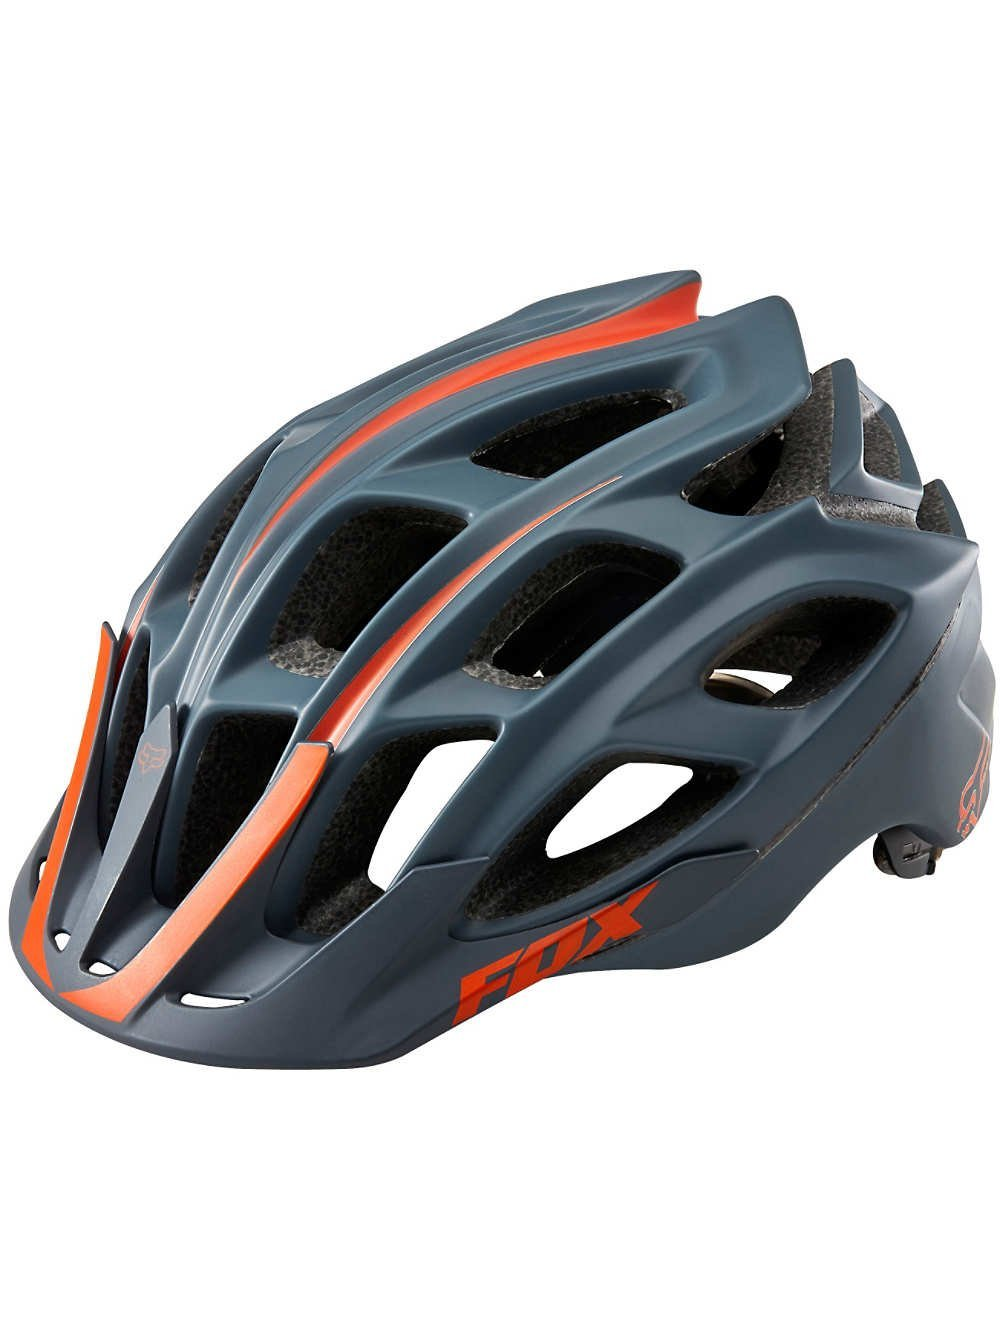 Large Fox Racing Bicycle Helmets